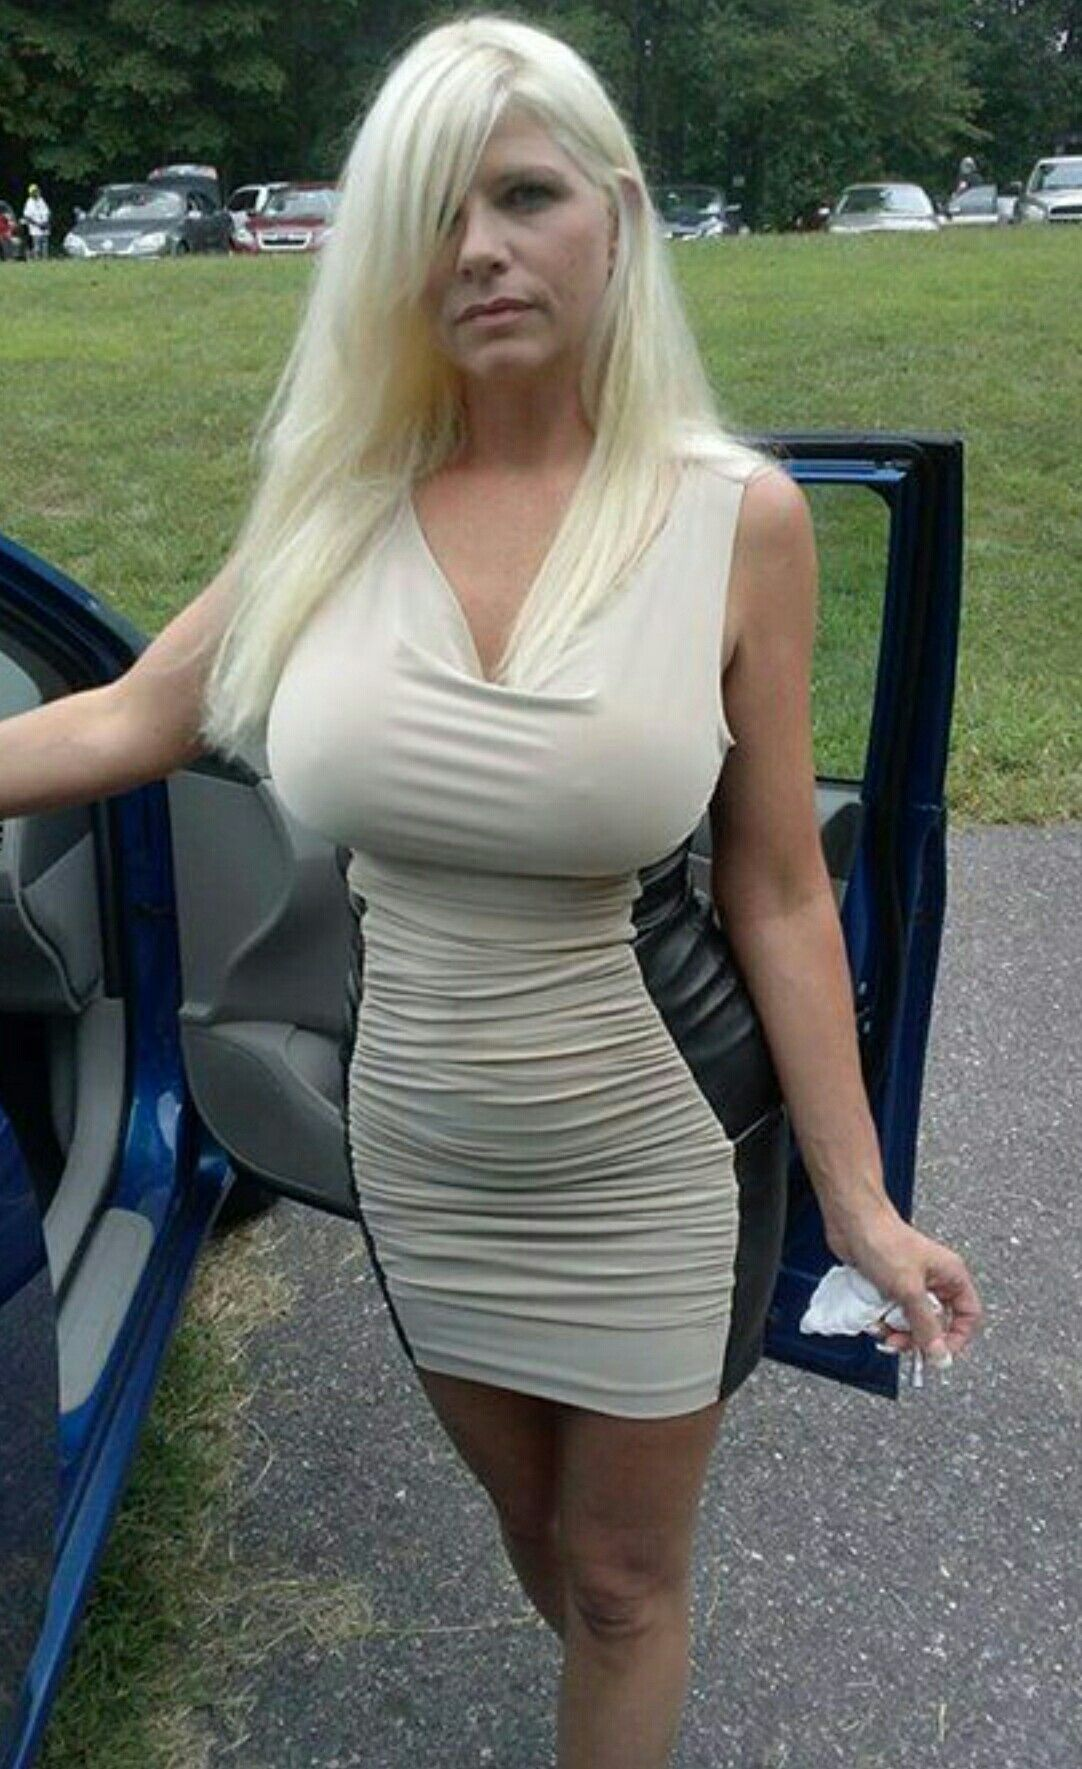 north powder milf women Our network of milfs women in durkee is the perfect place to make friends or find a milf girlfriend in durkee north powder milfs dating website.